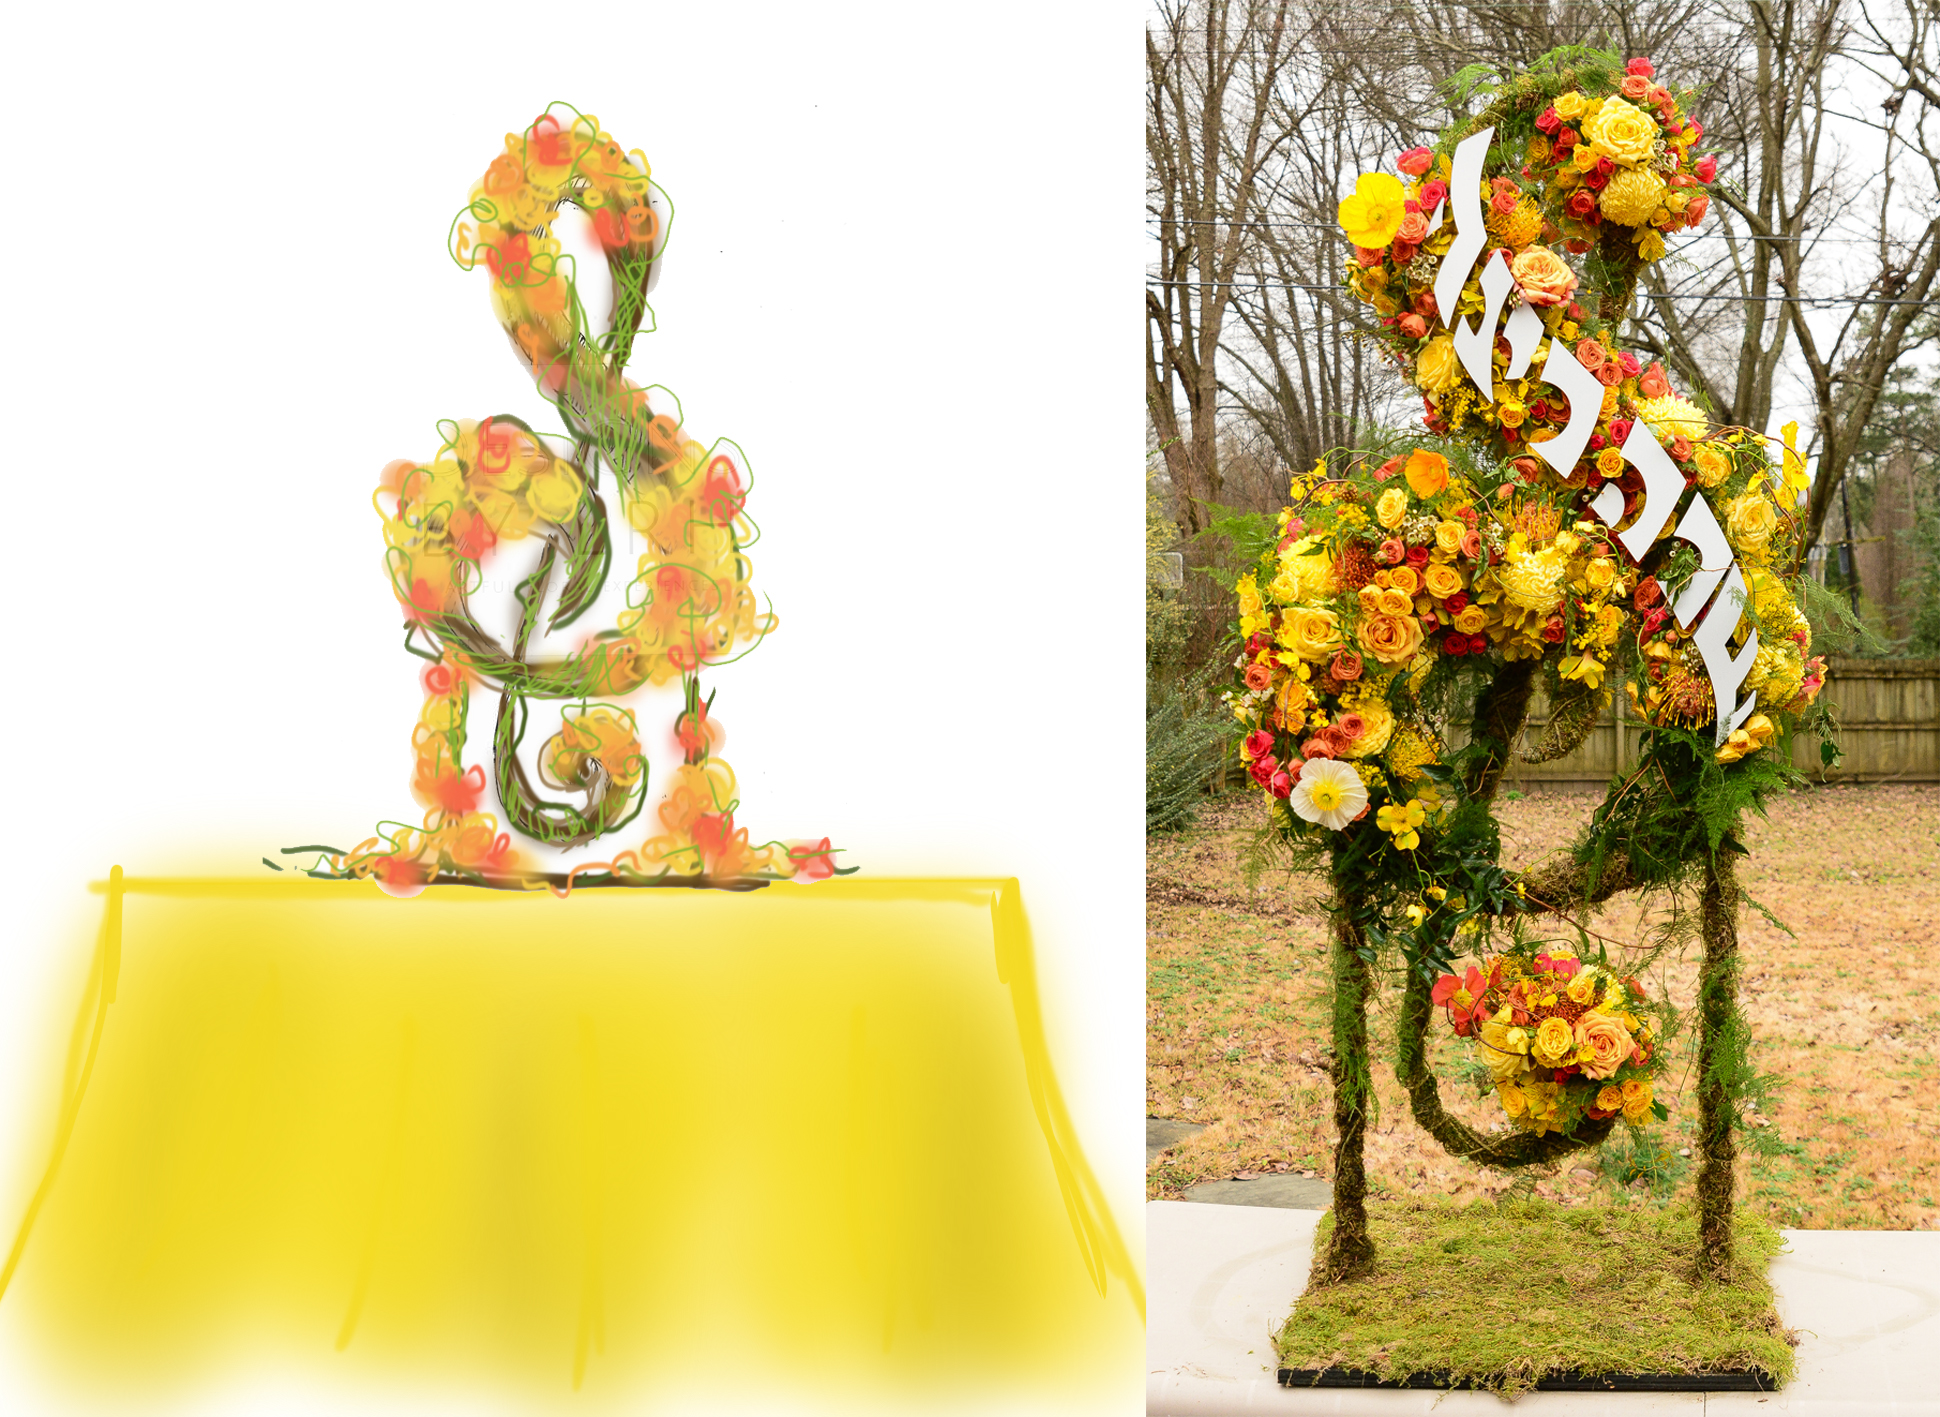 Having a fun themed party or shower? - We specialize in large-scaled custom and branded floral sculptures and centerpieces. The perfect addition to take your party to the next level.